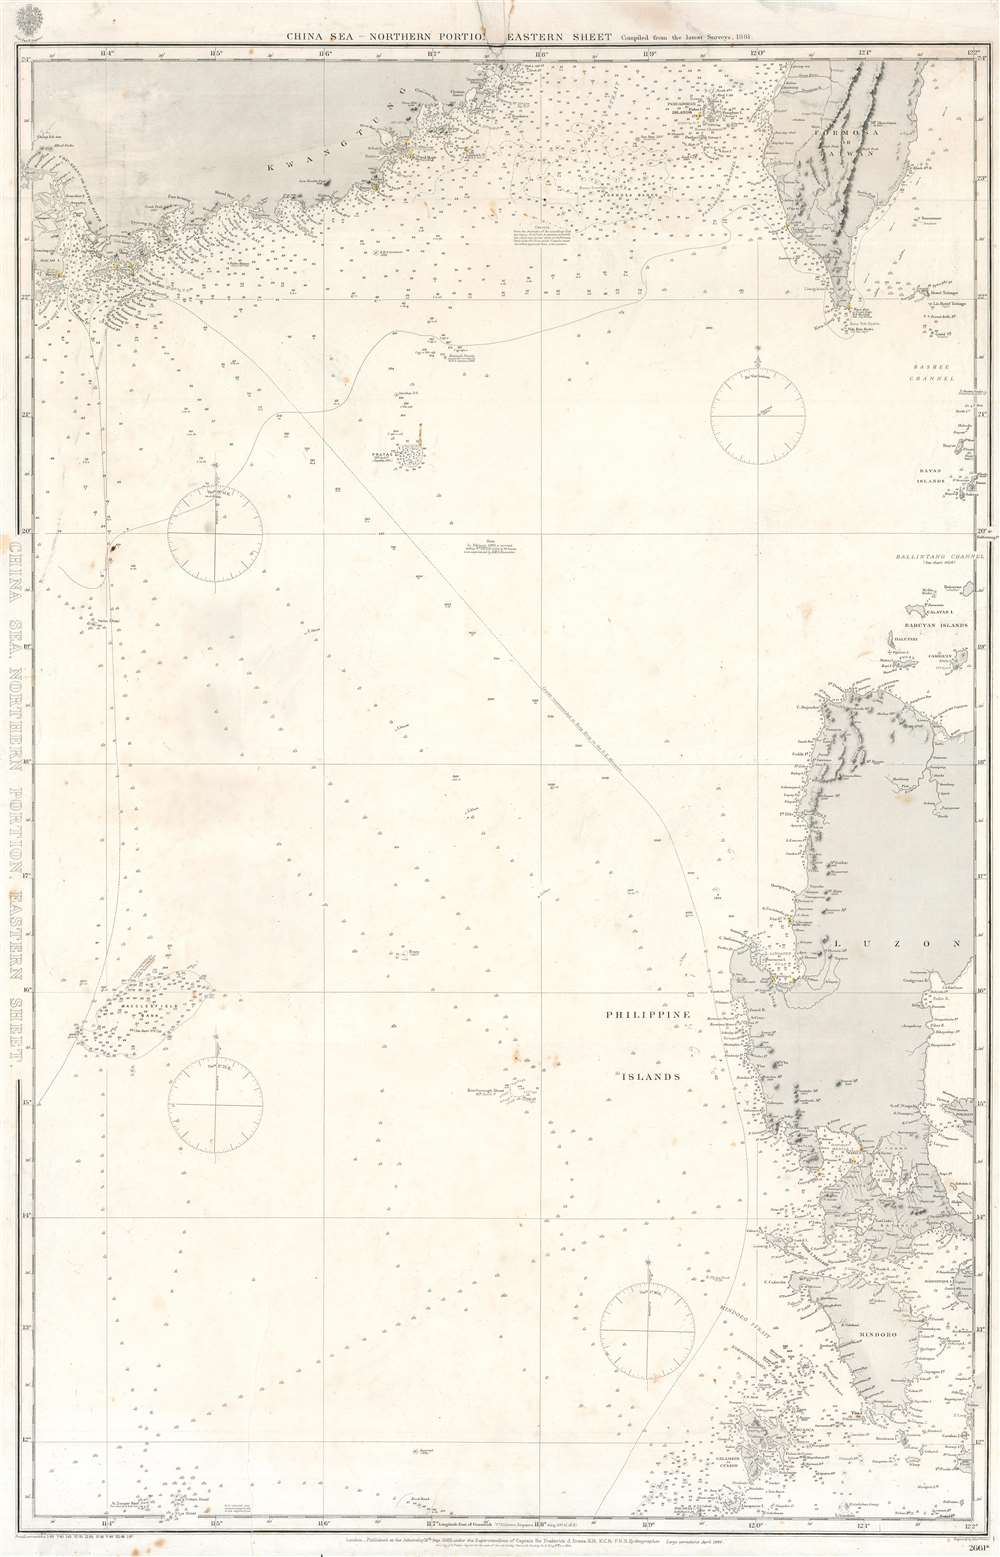 China Sea, Northern Portion, Eastern Sheet. - Main View